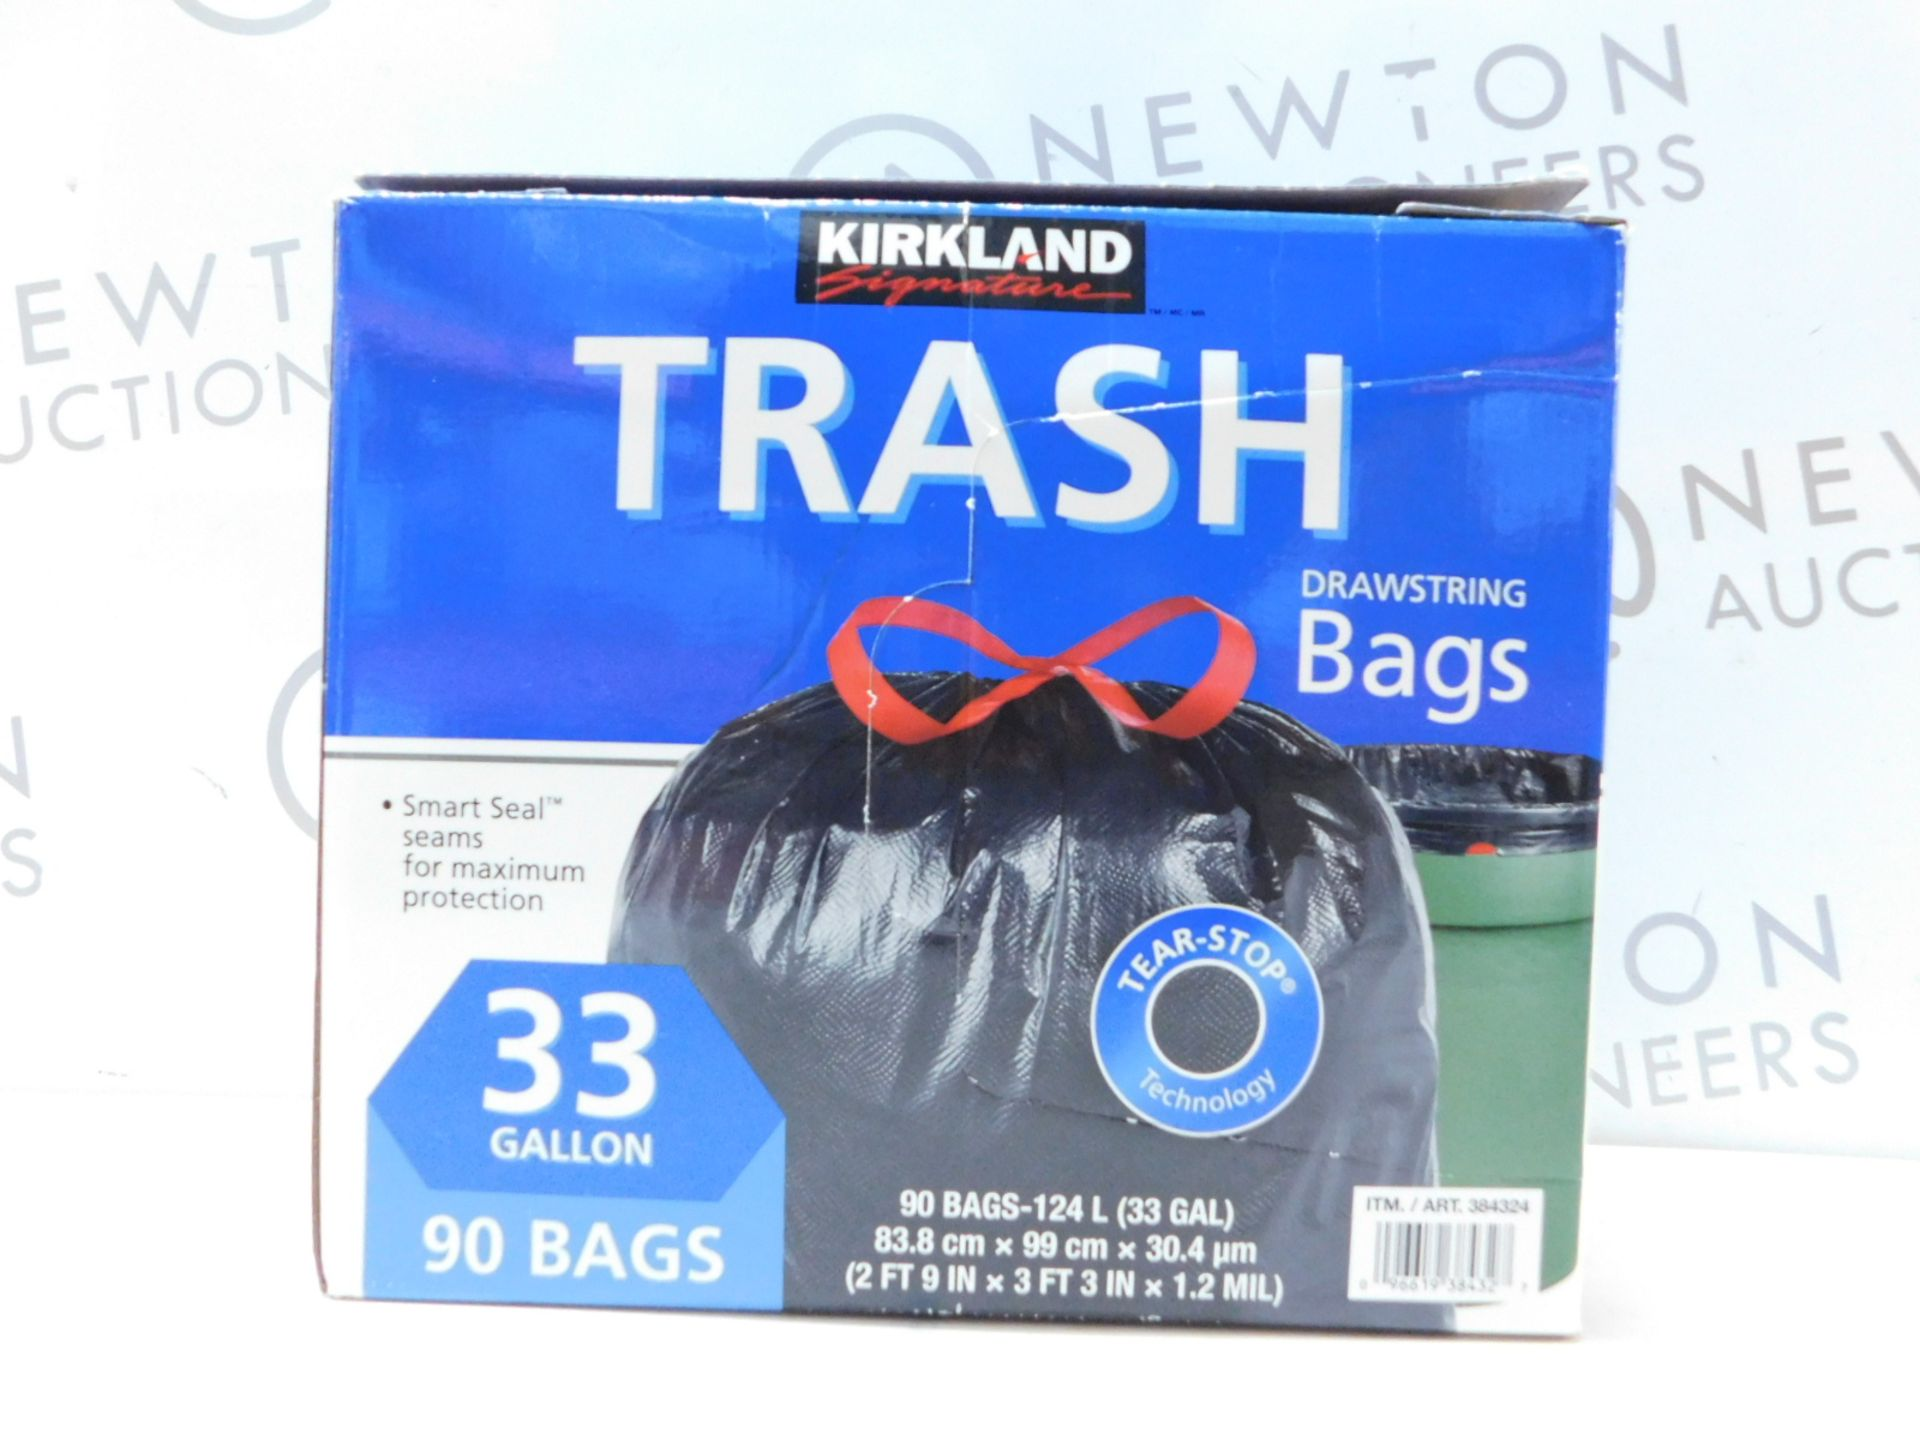 Lot 240 - 1 BOX OF KIRKLAND SIGNATURE DRAWSTRING KITCHEN BAGS (APPROX 200) RRP £39.99